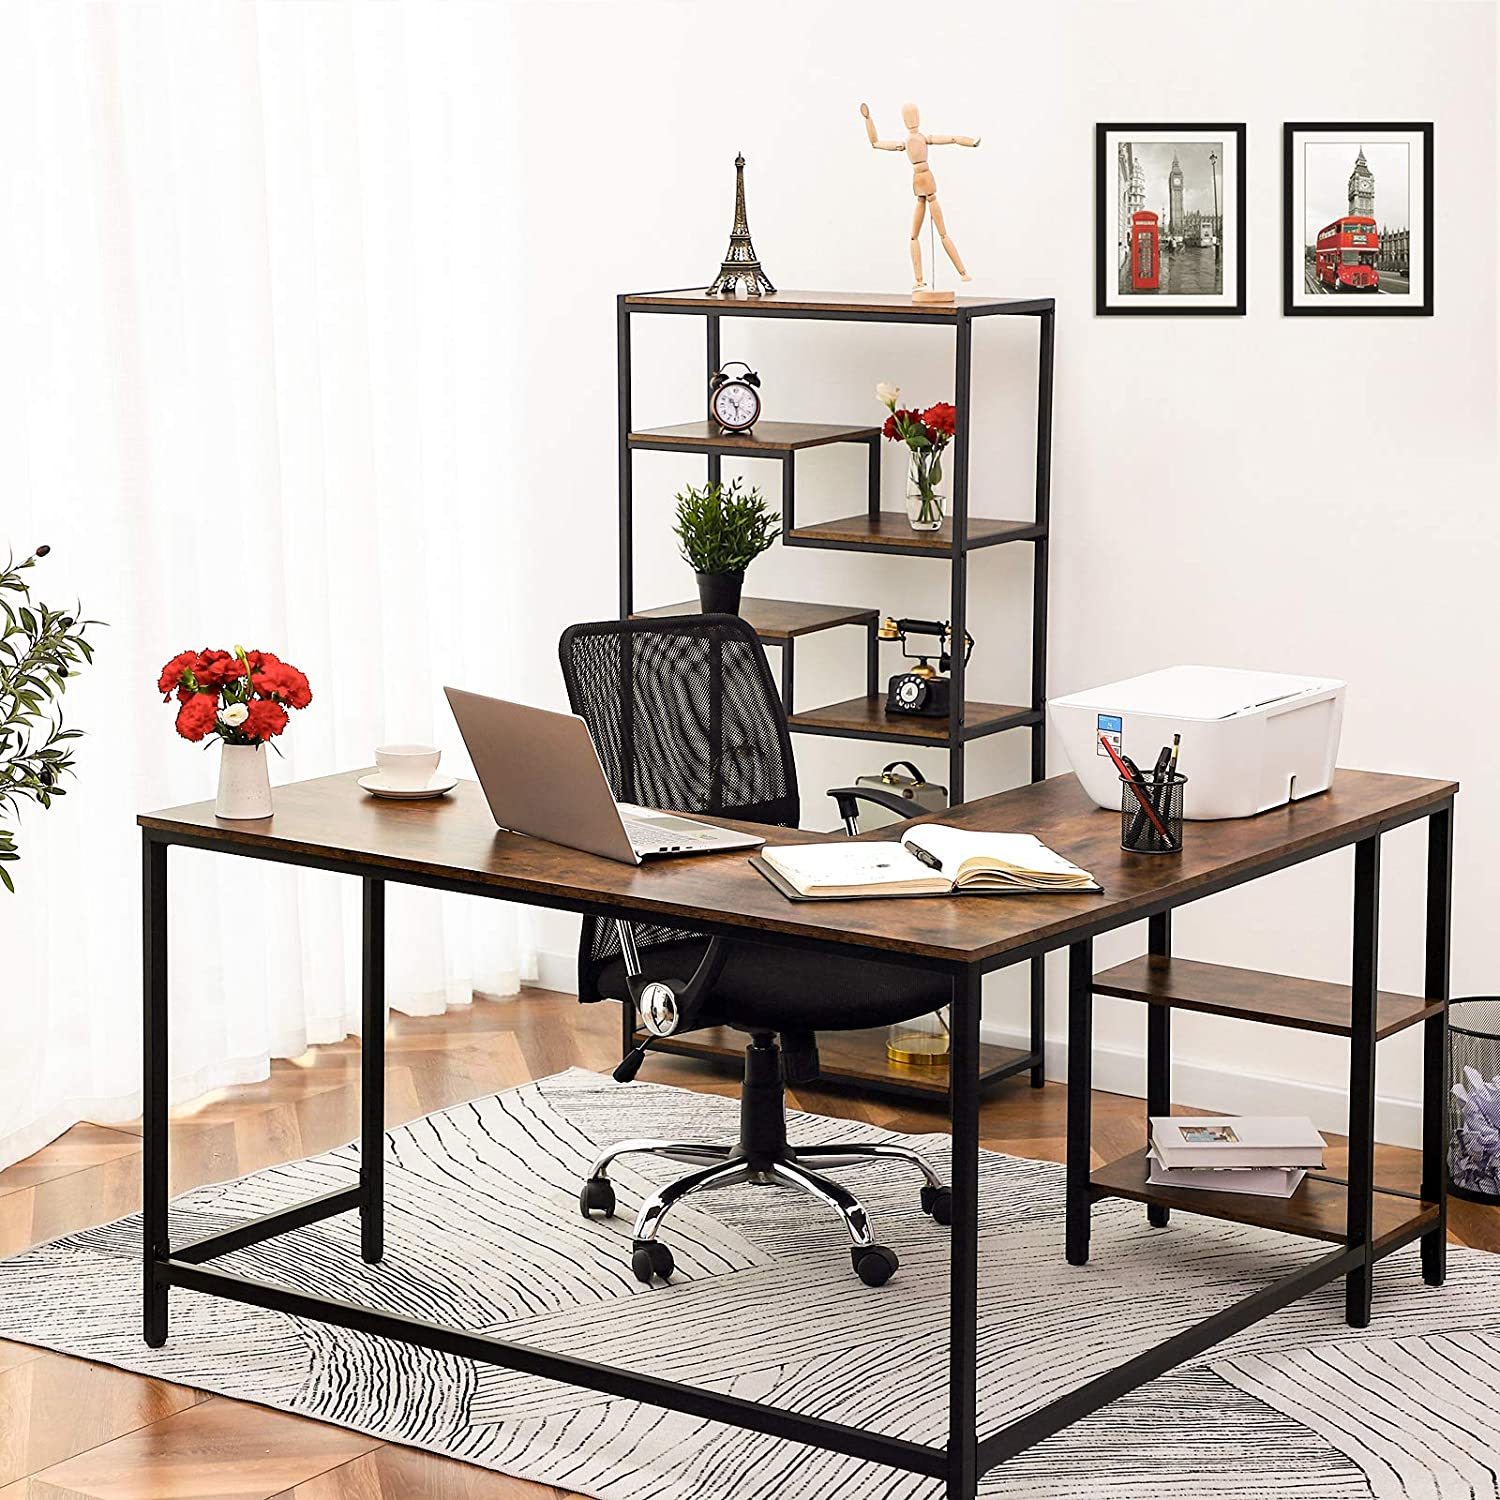 Study Workstation for Home Office Stable and Space-Saving HOOBRO L-Shaped Computer Desk Industrial Corner Writing Desk with Shelves Rustic Brown BF35DN01